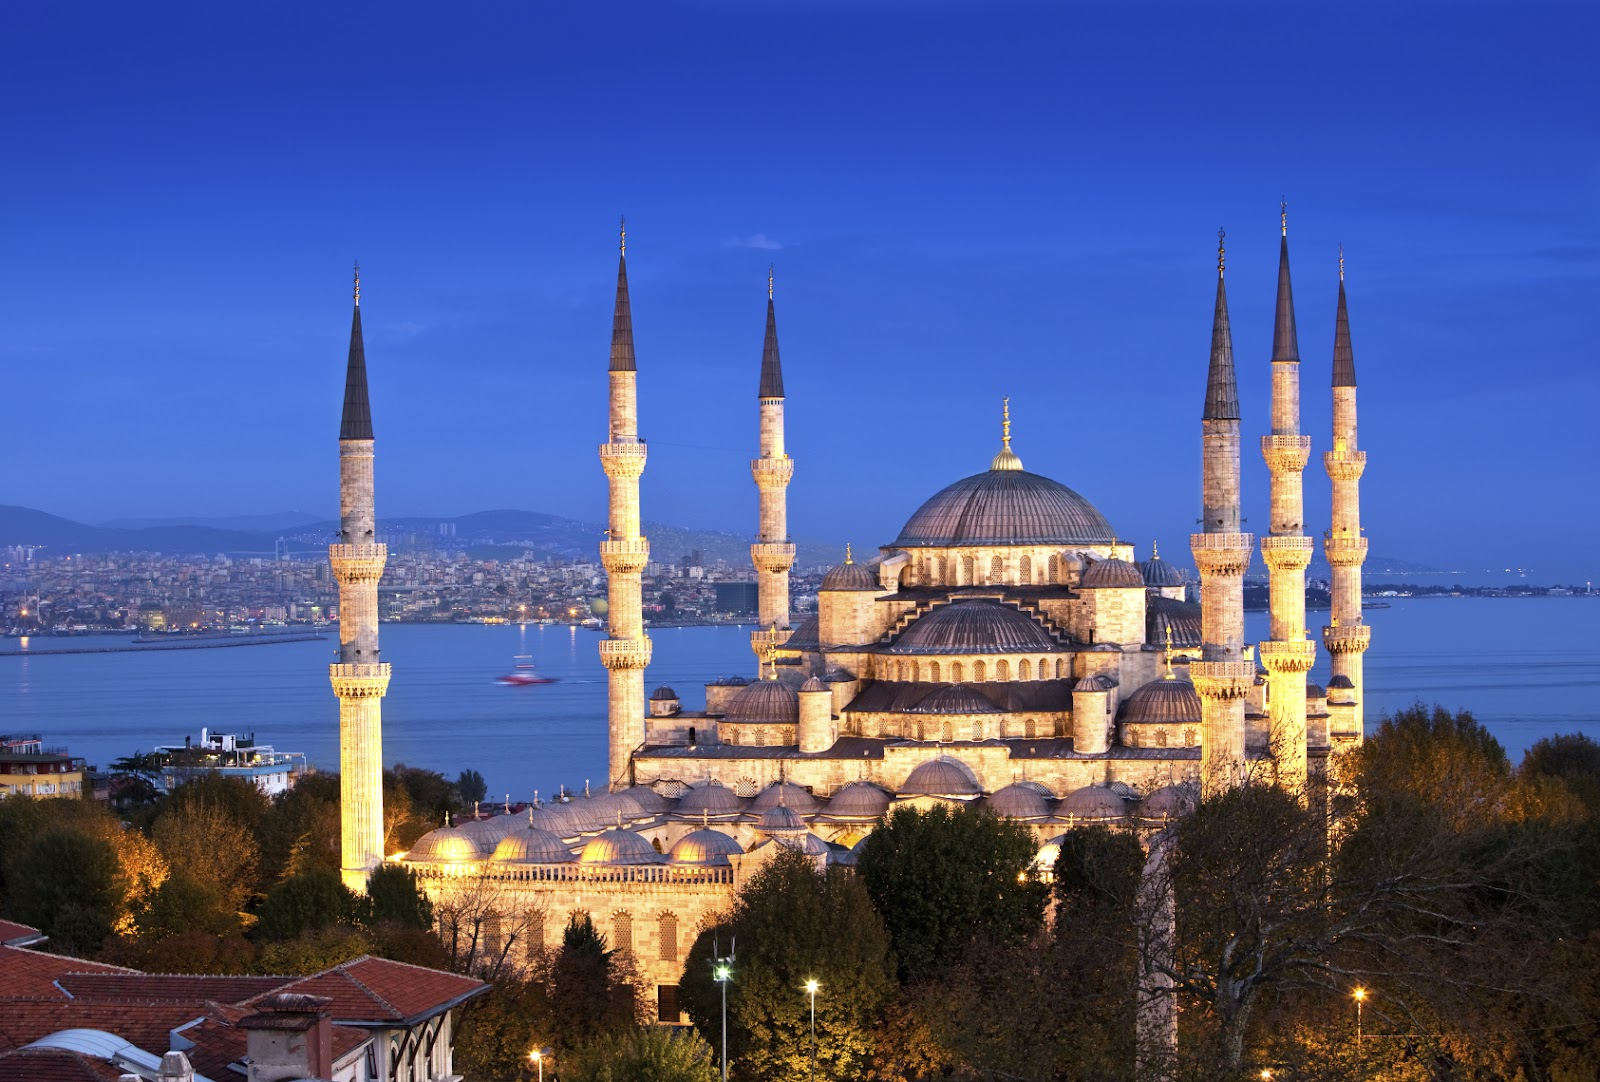 Worlds mosques masjid october 2015 the sultan ahmed mosque or sultan ahmet mosque is a historic mosque in istanbul the mosque is popularly known as the blue mosque for the blue tiles thecheapjerseys Gallery